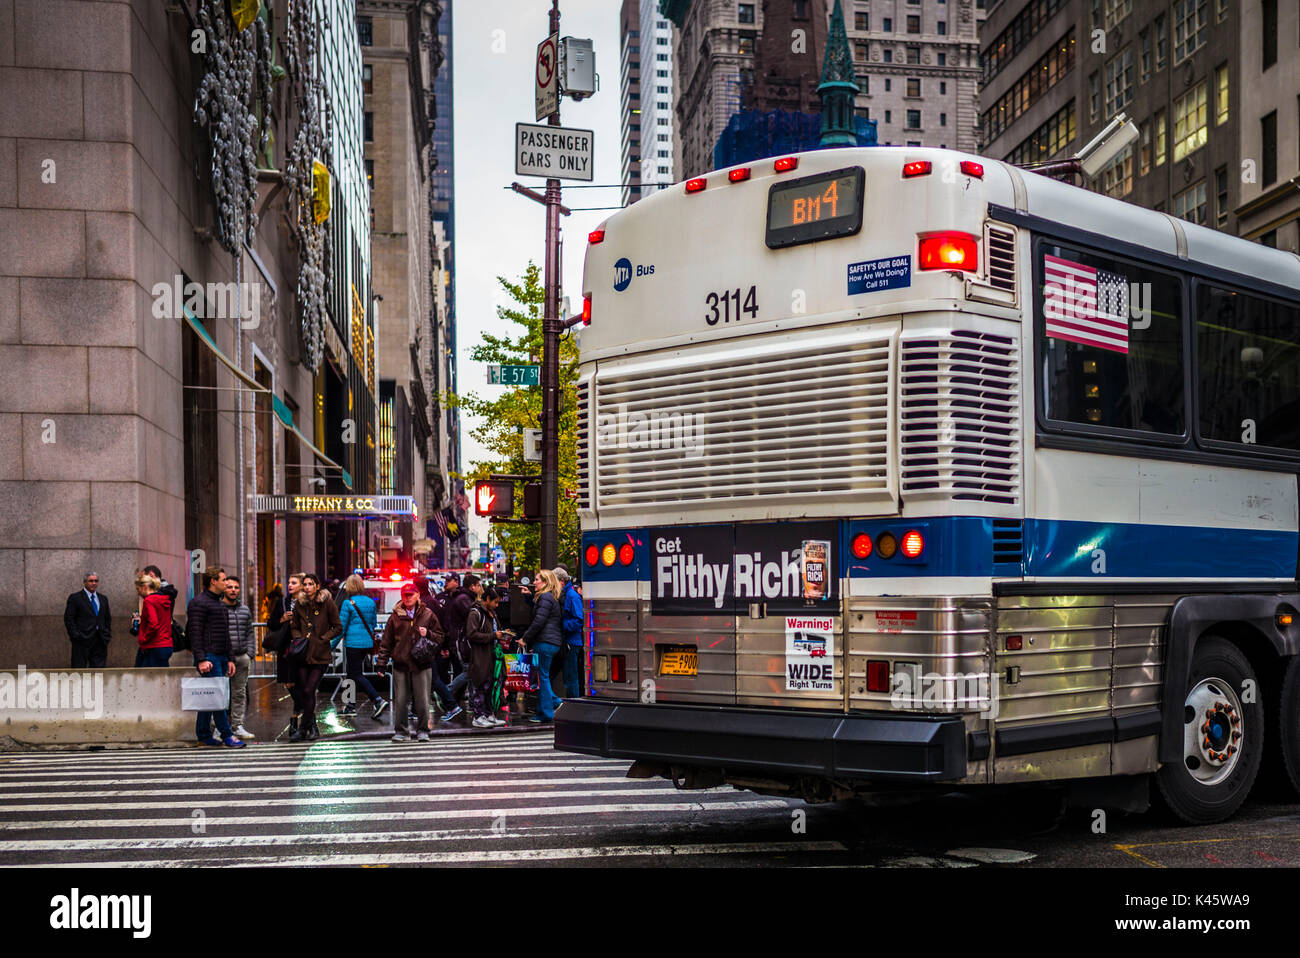 USA, New York, New York City, Mid-Town Manhattan, Filthy Rich bus sign by Trump Tower - Stock Image